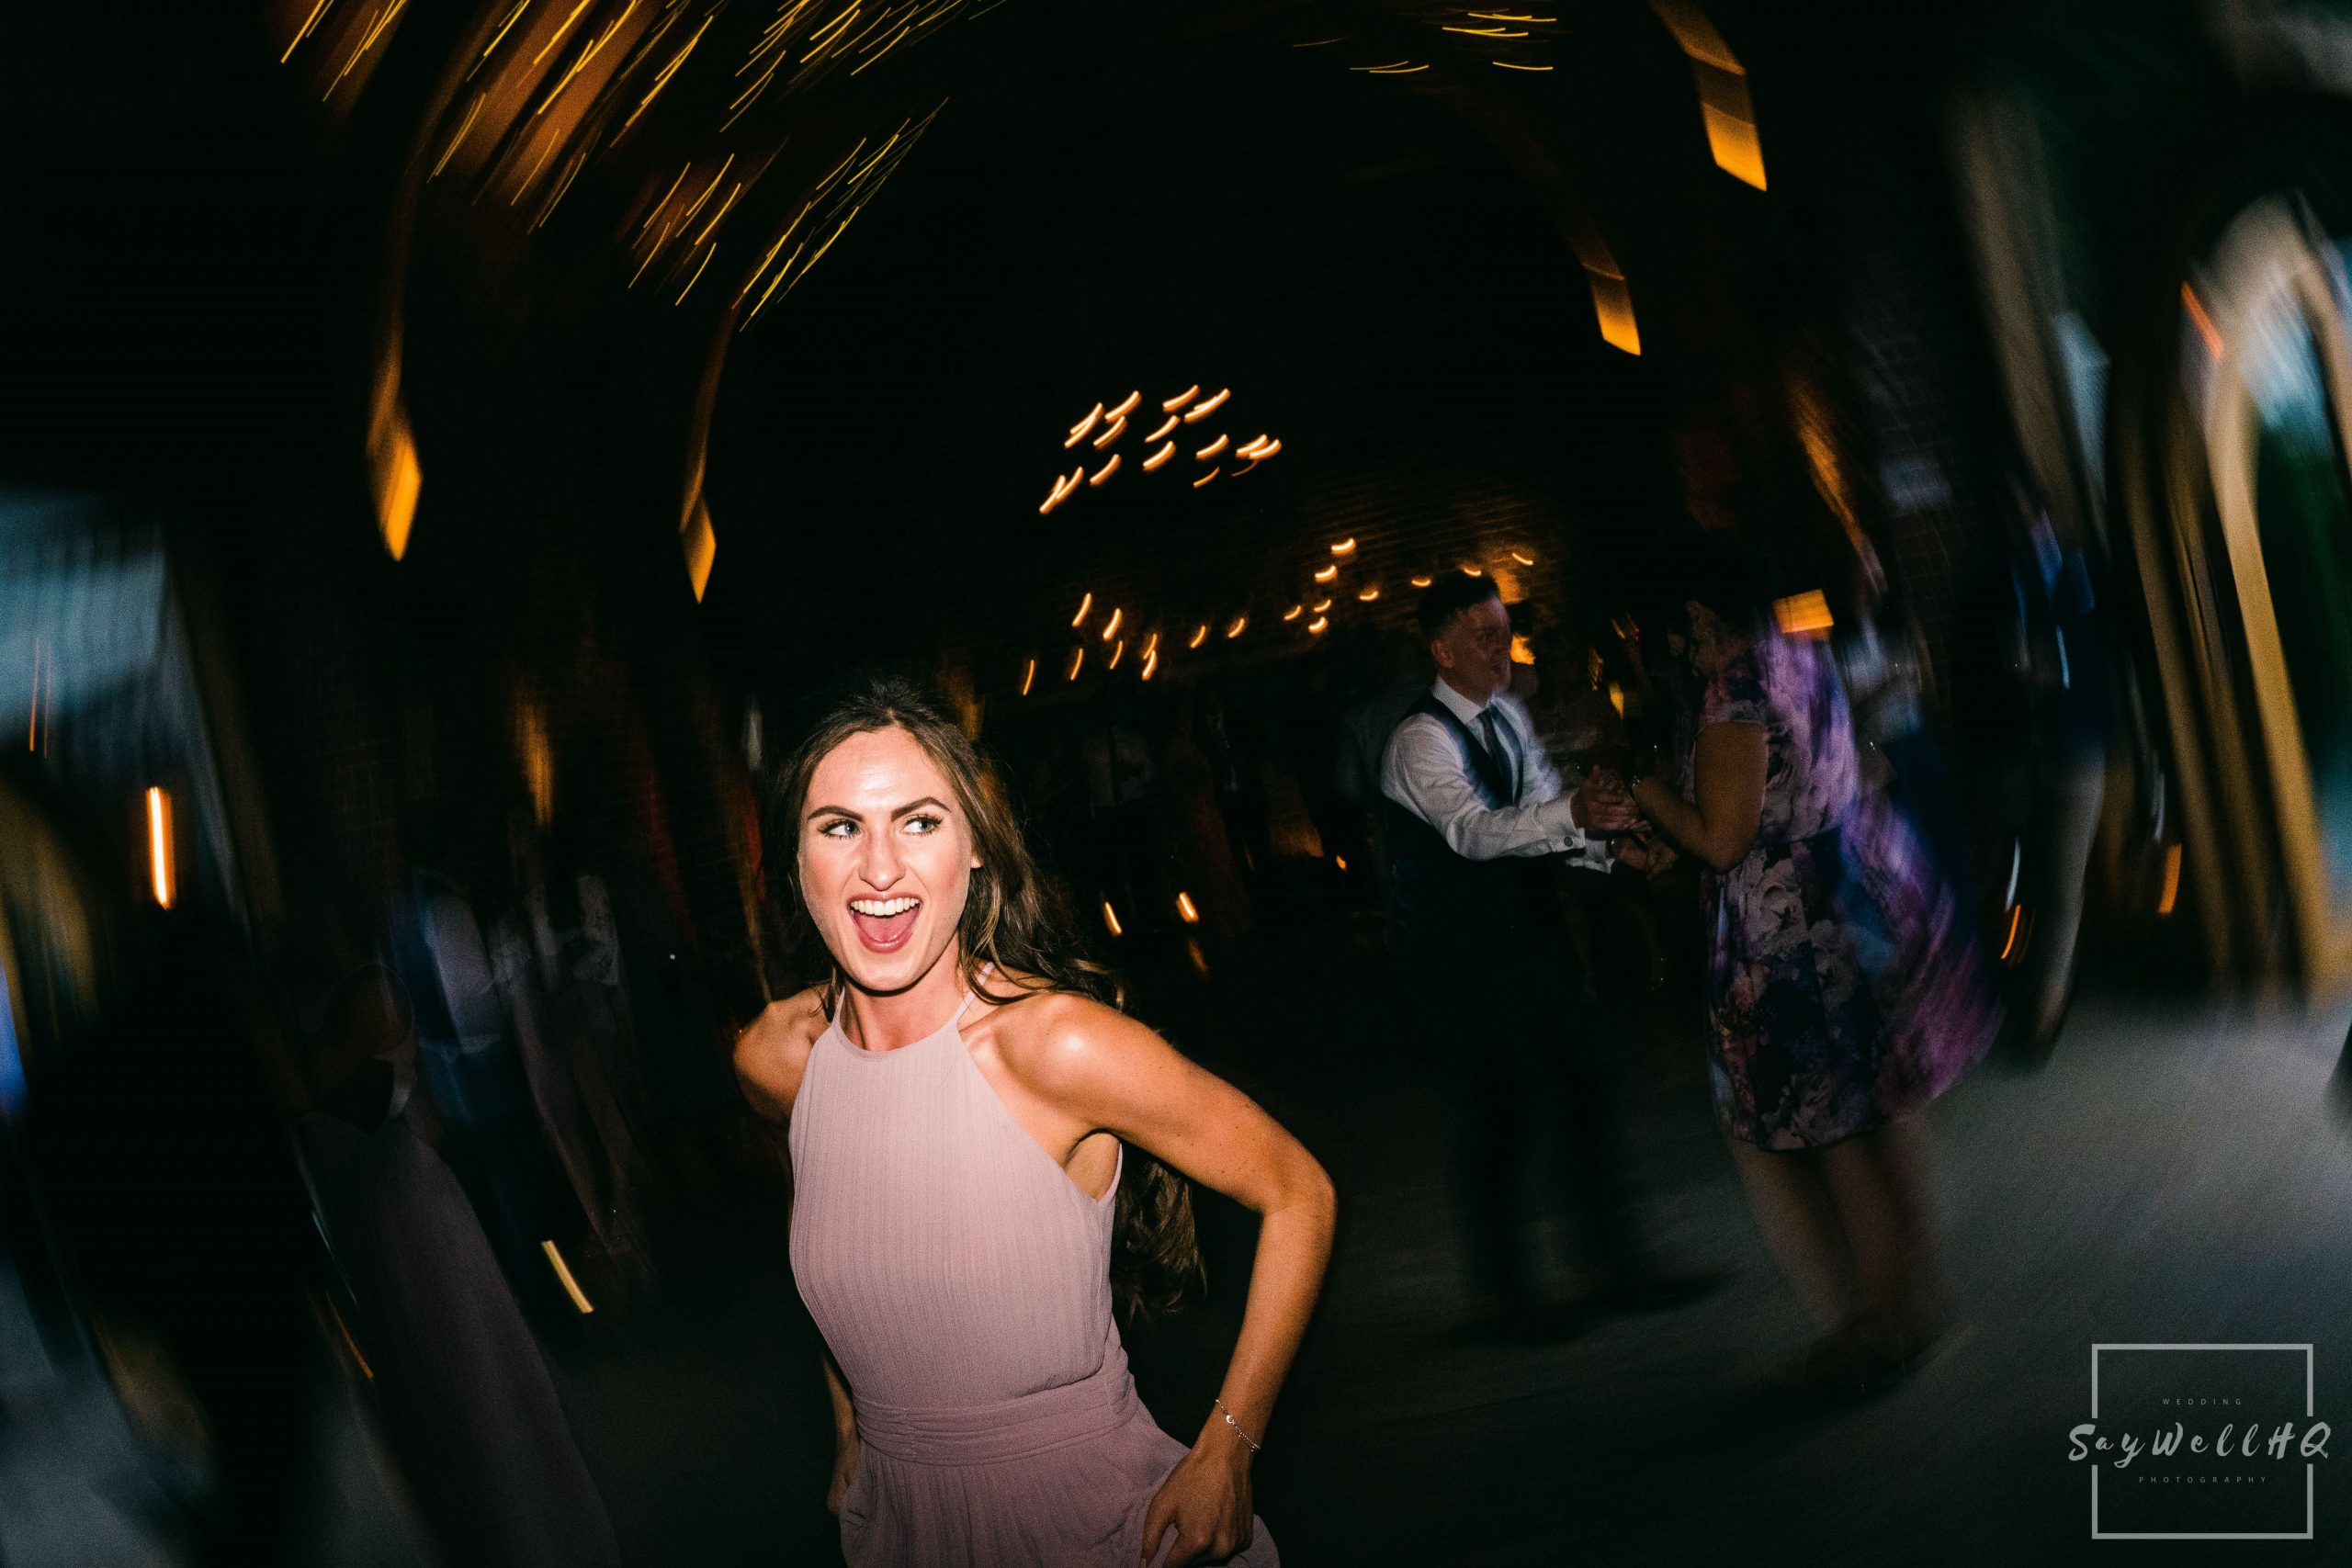 Derby Wedding Photographer - bridesmaid having a laugh during the live band playing at a wedding disco